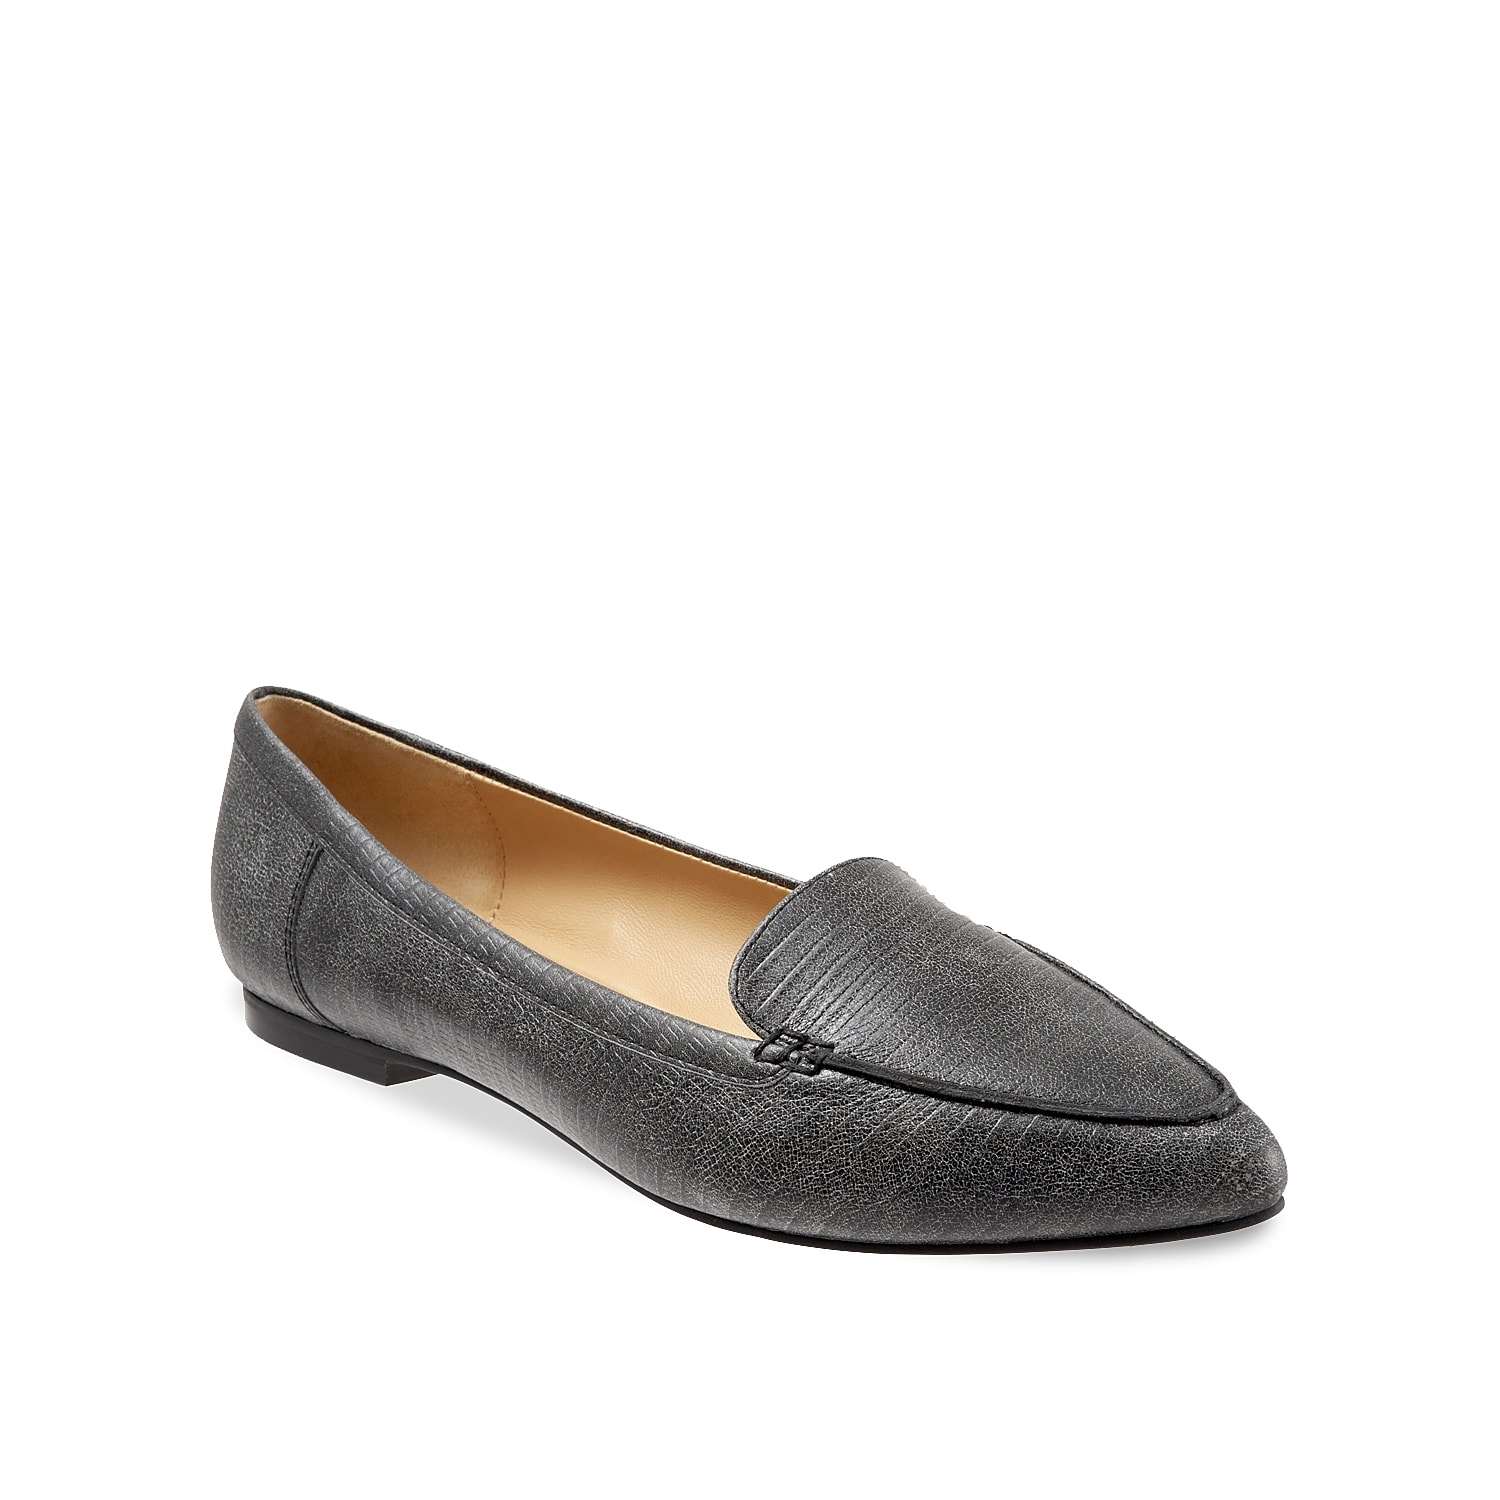 Classic and sophisticated, the Ember loafer from Trotters will quickly become a staple in your wardobe. A cut-away lip and pointed toe creates a tailored silhouette that will pair with anything from jeans to slacks.